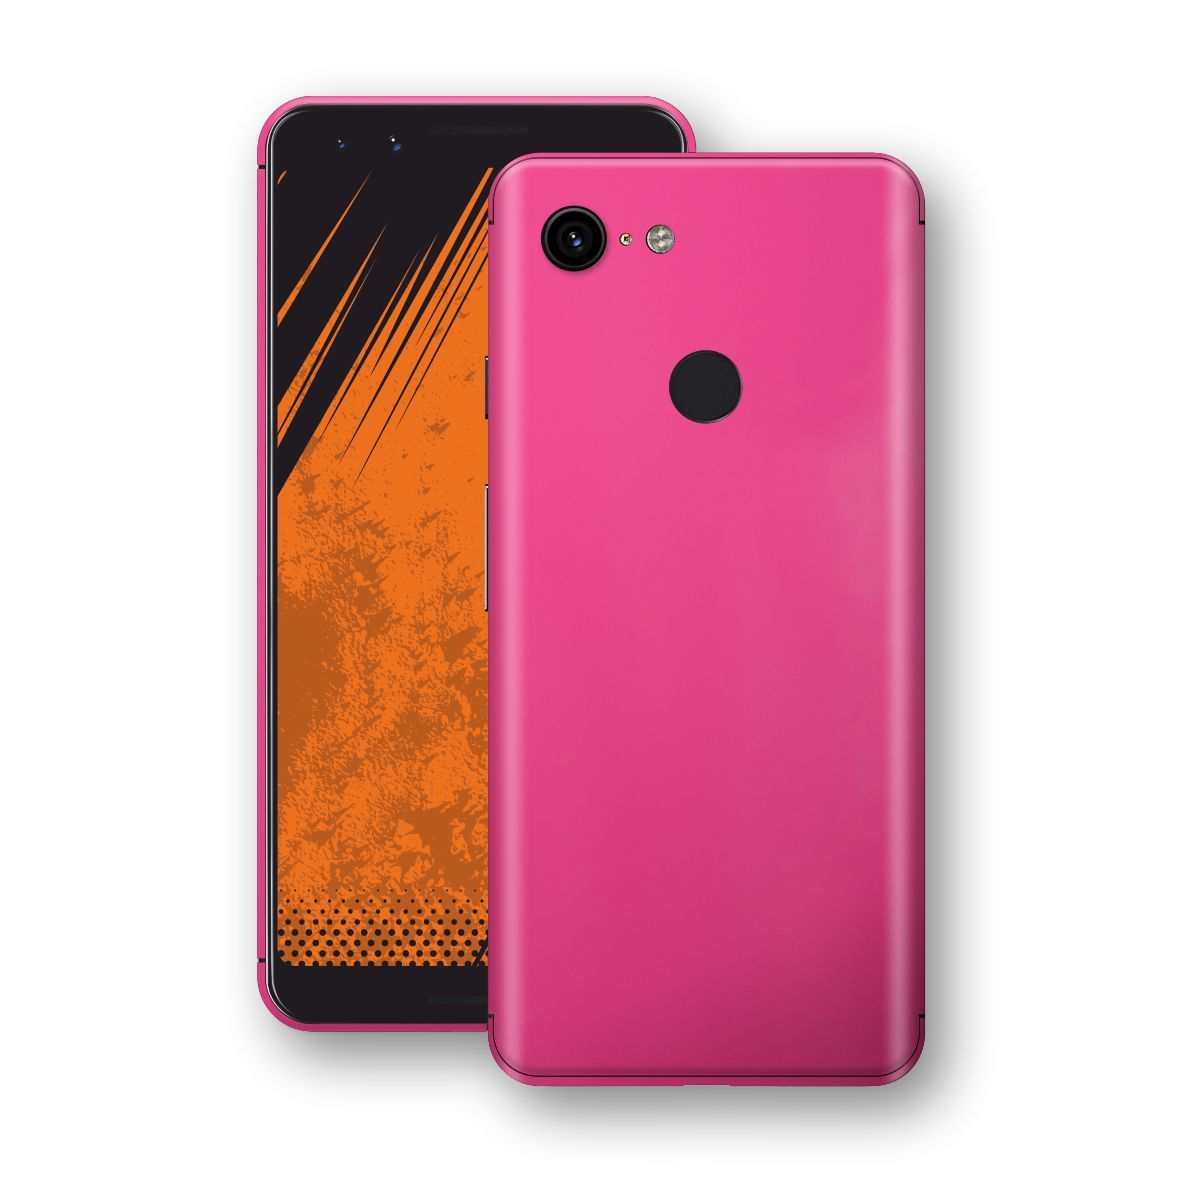 Google Pixel 3 Magenta Glossy Gloss Finish Skin, Decal, Wrap, Protector, Cover by EasySkinz | EasySkinz.com